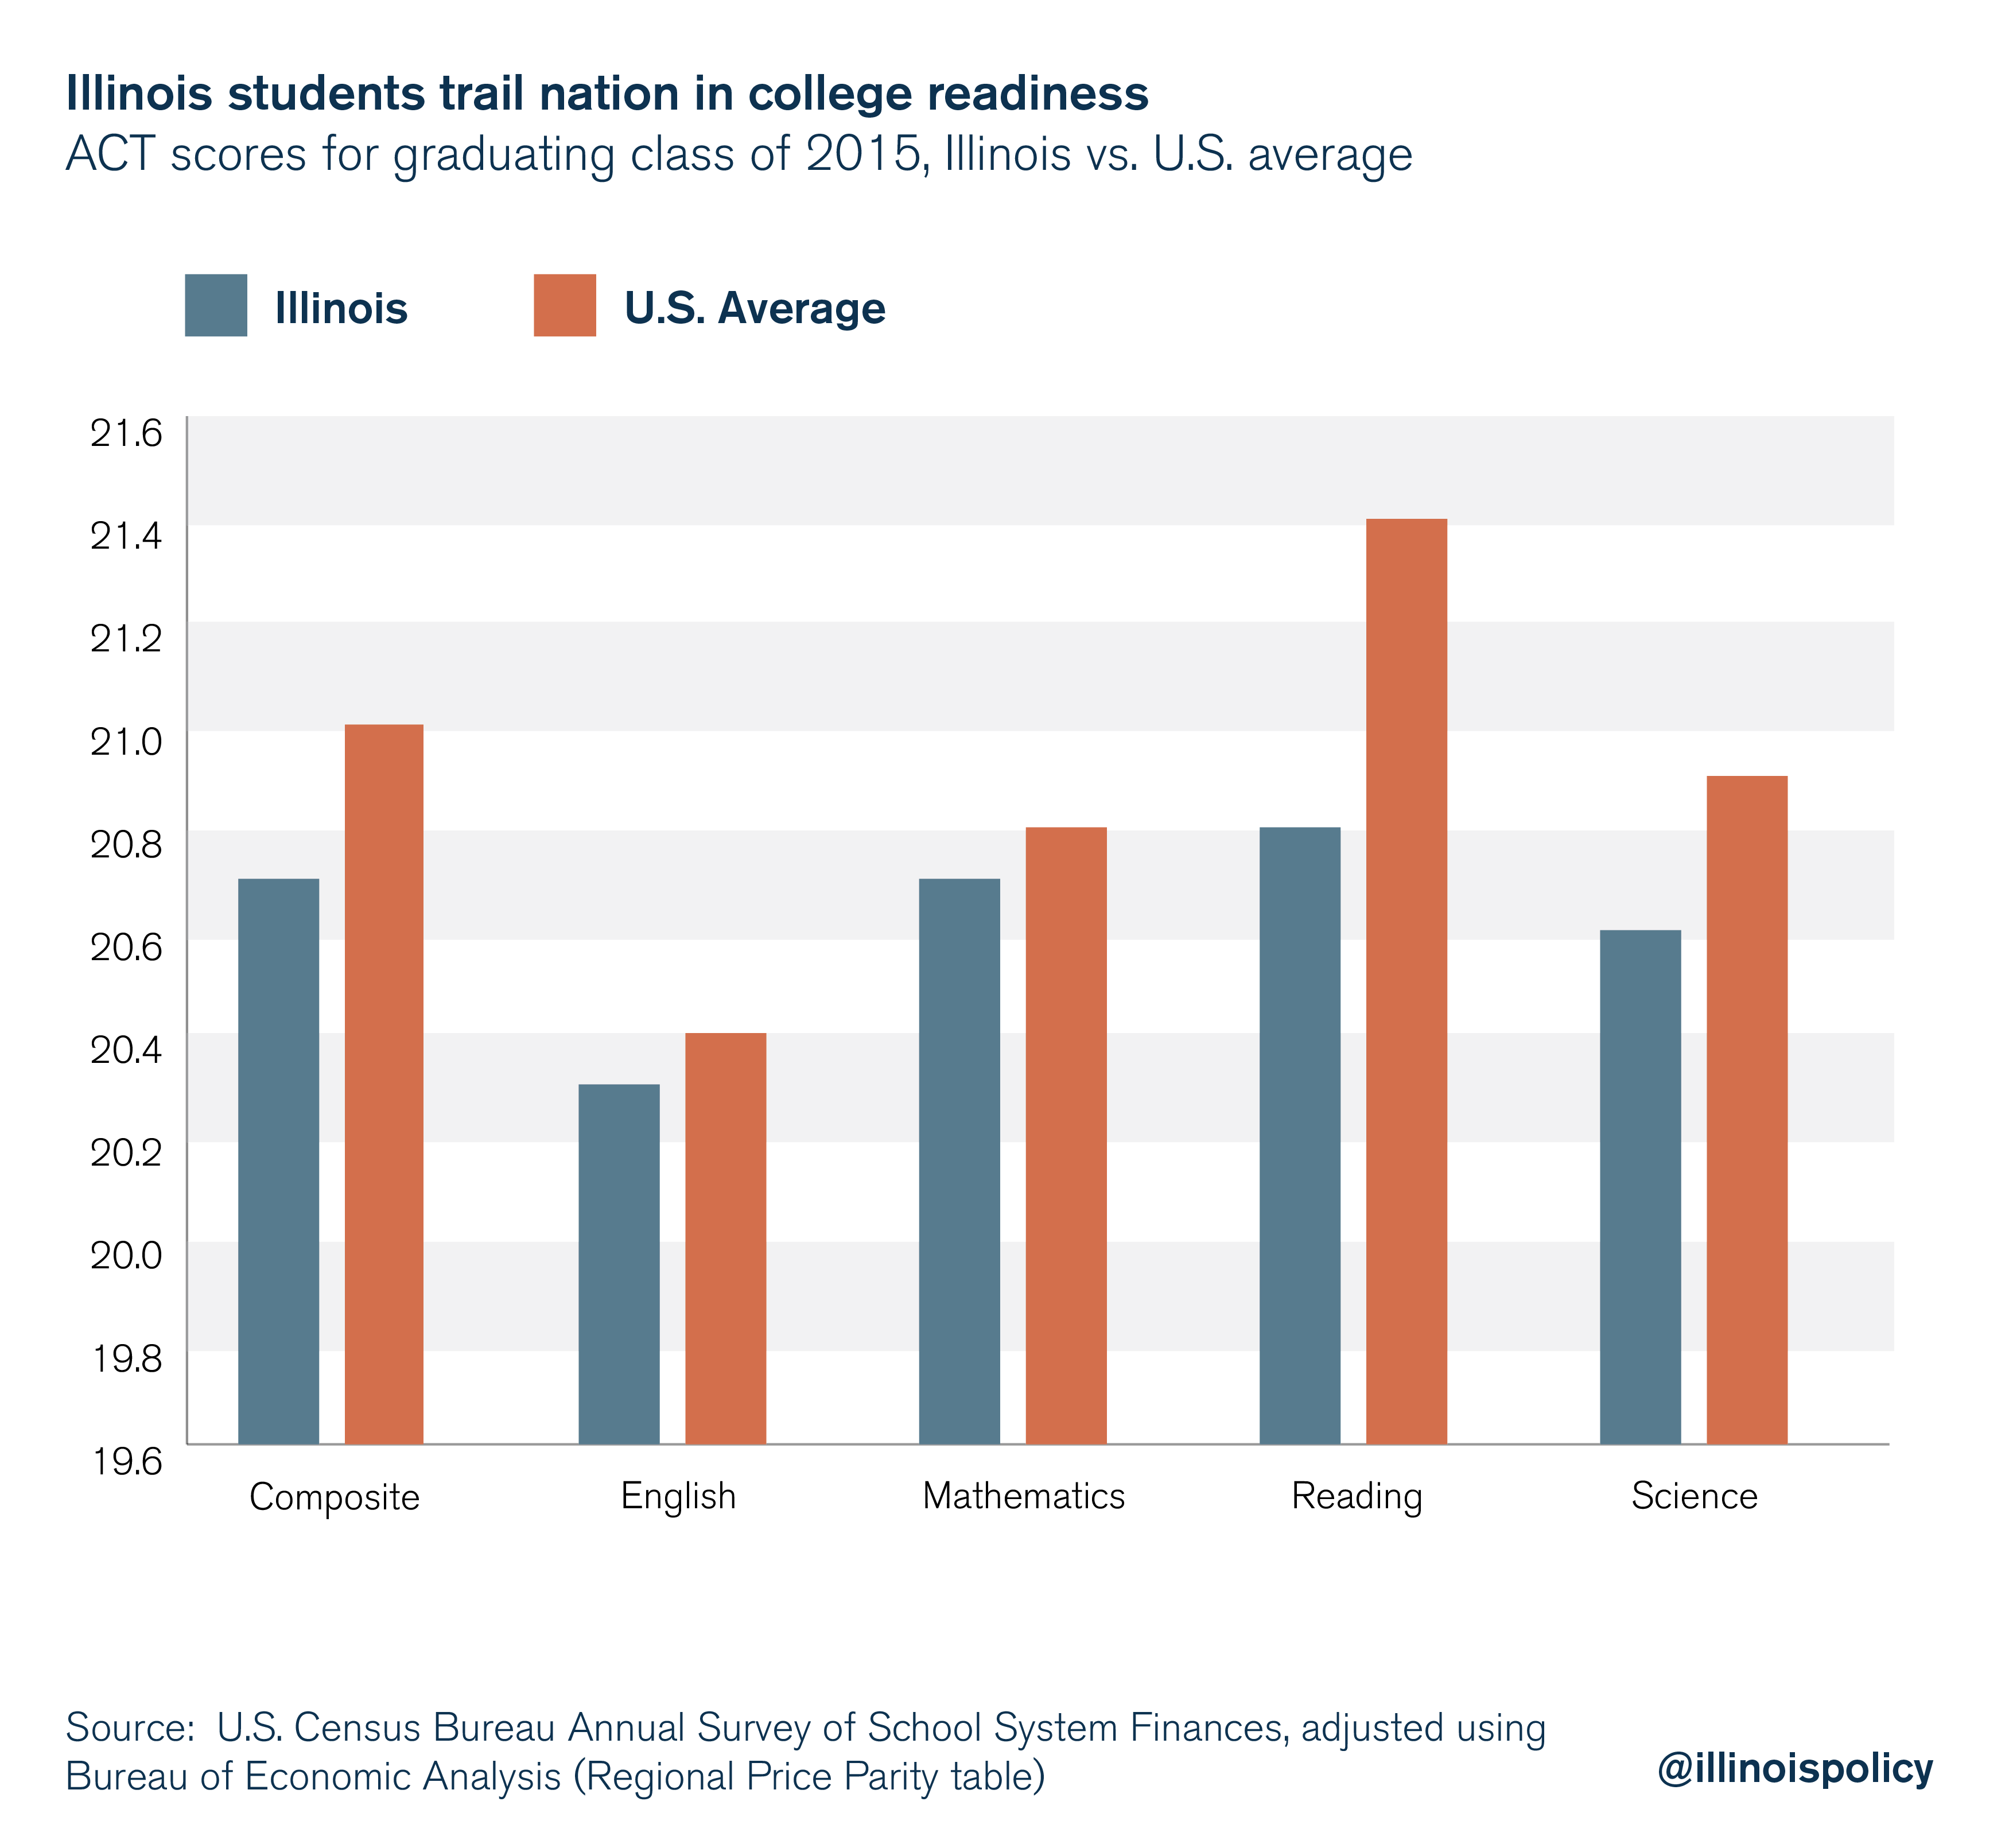 Illinois students trail nation in college readiness